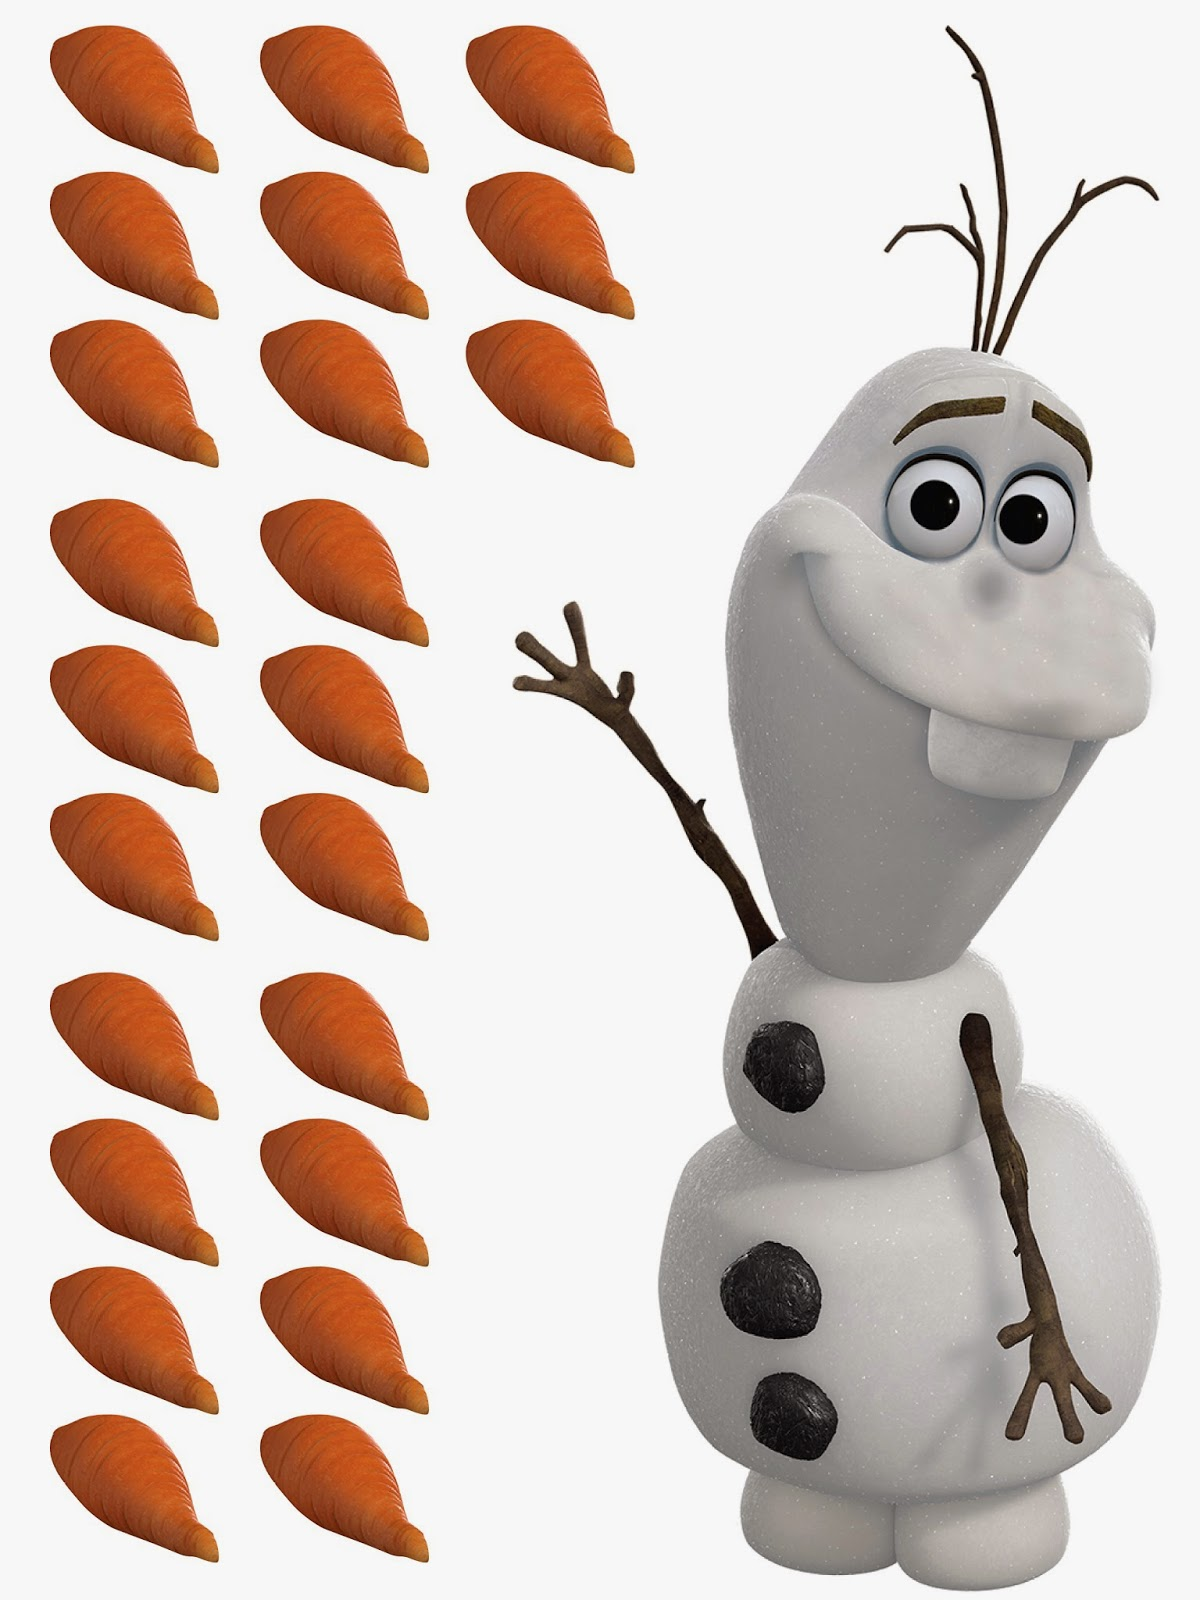 Frozen Birthday Party Ideas Pin the Carrot on Olaf